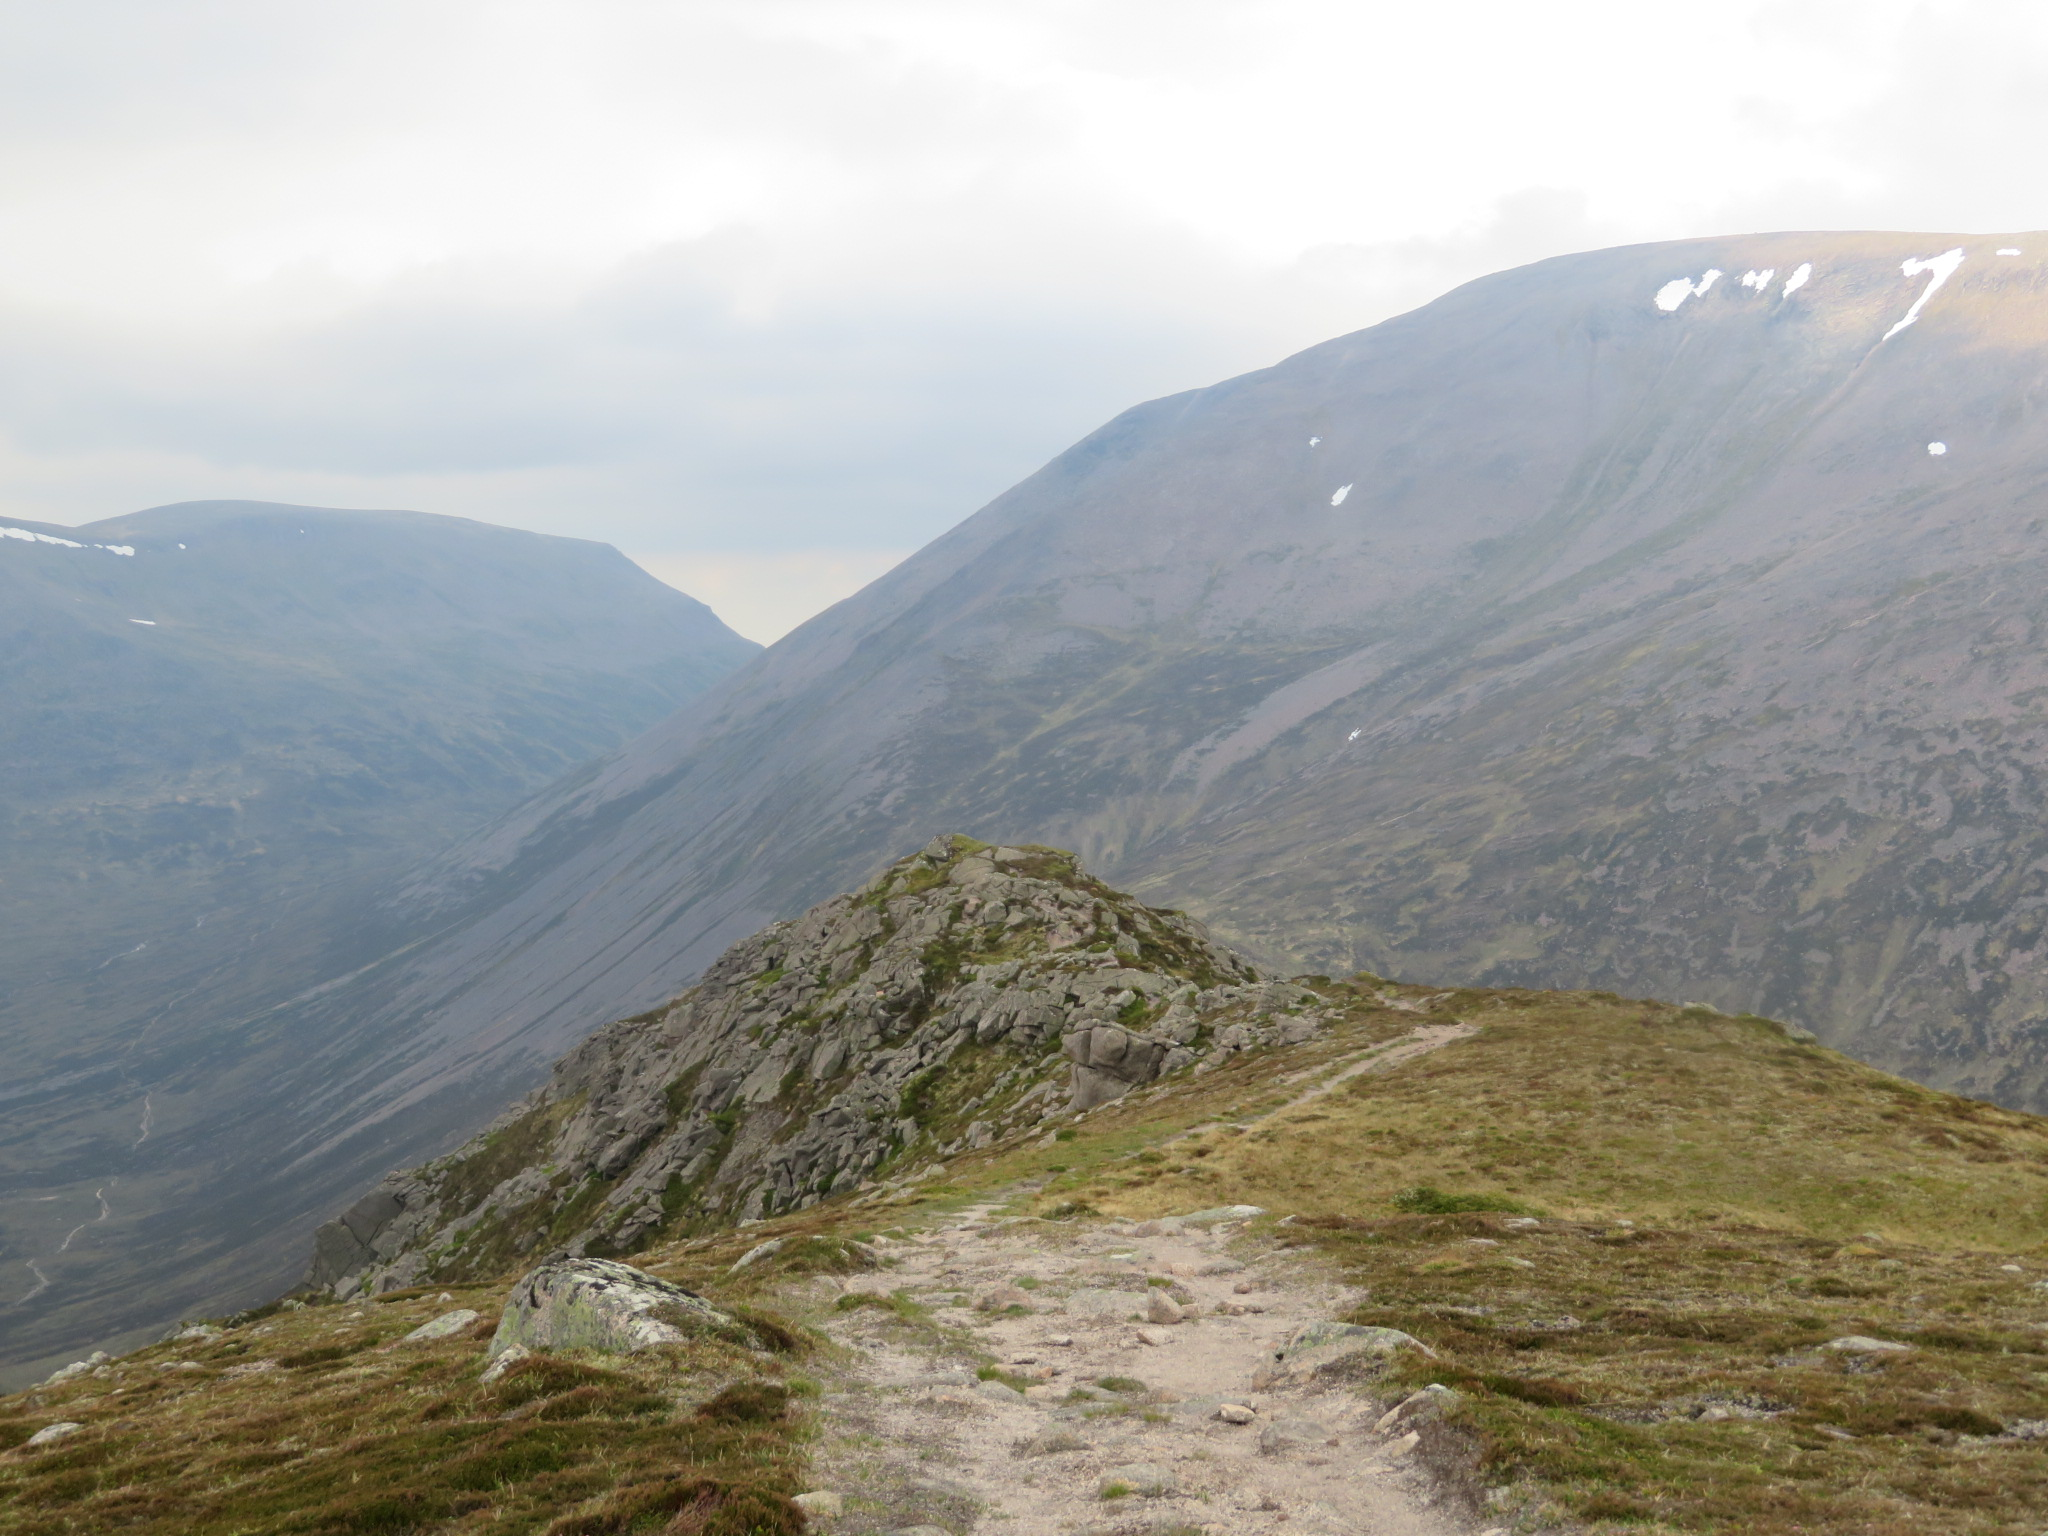 Upper Dee Valley: Narrowing Carn A Mhaim ridge, Ben Macdui and beginning of Lairig Ghru - © William Mackesy